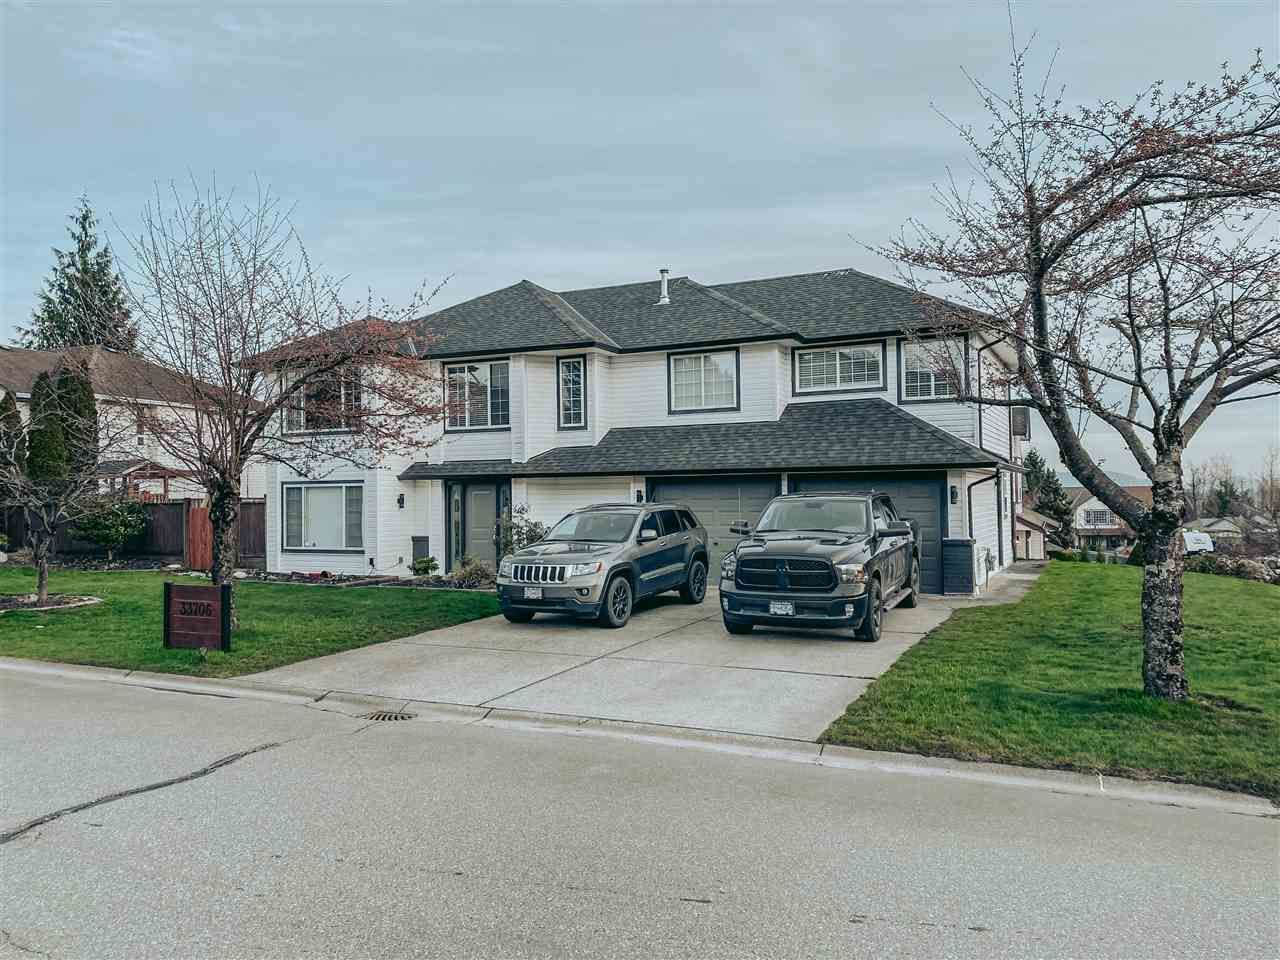 Main Photo: 33706 APPS COURT in Mission: Mission BC House for sale : MLS®# R2560503